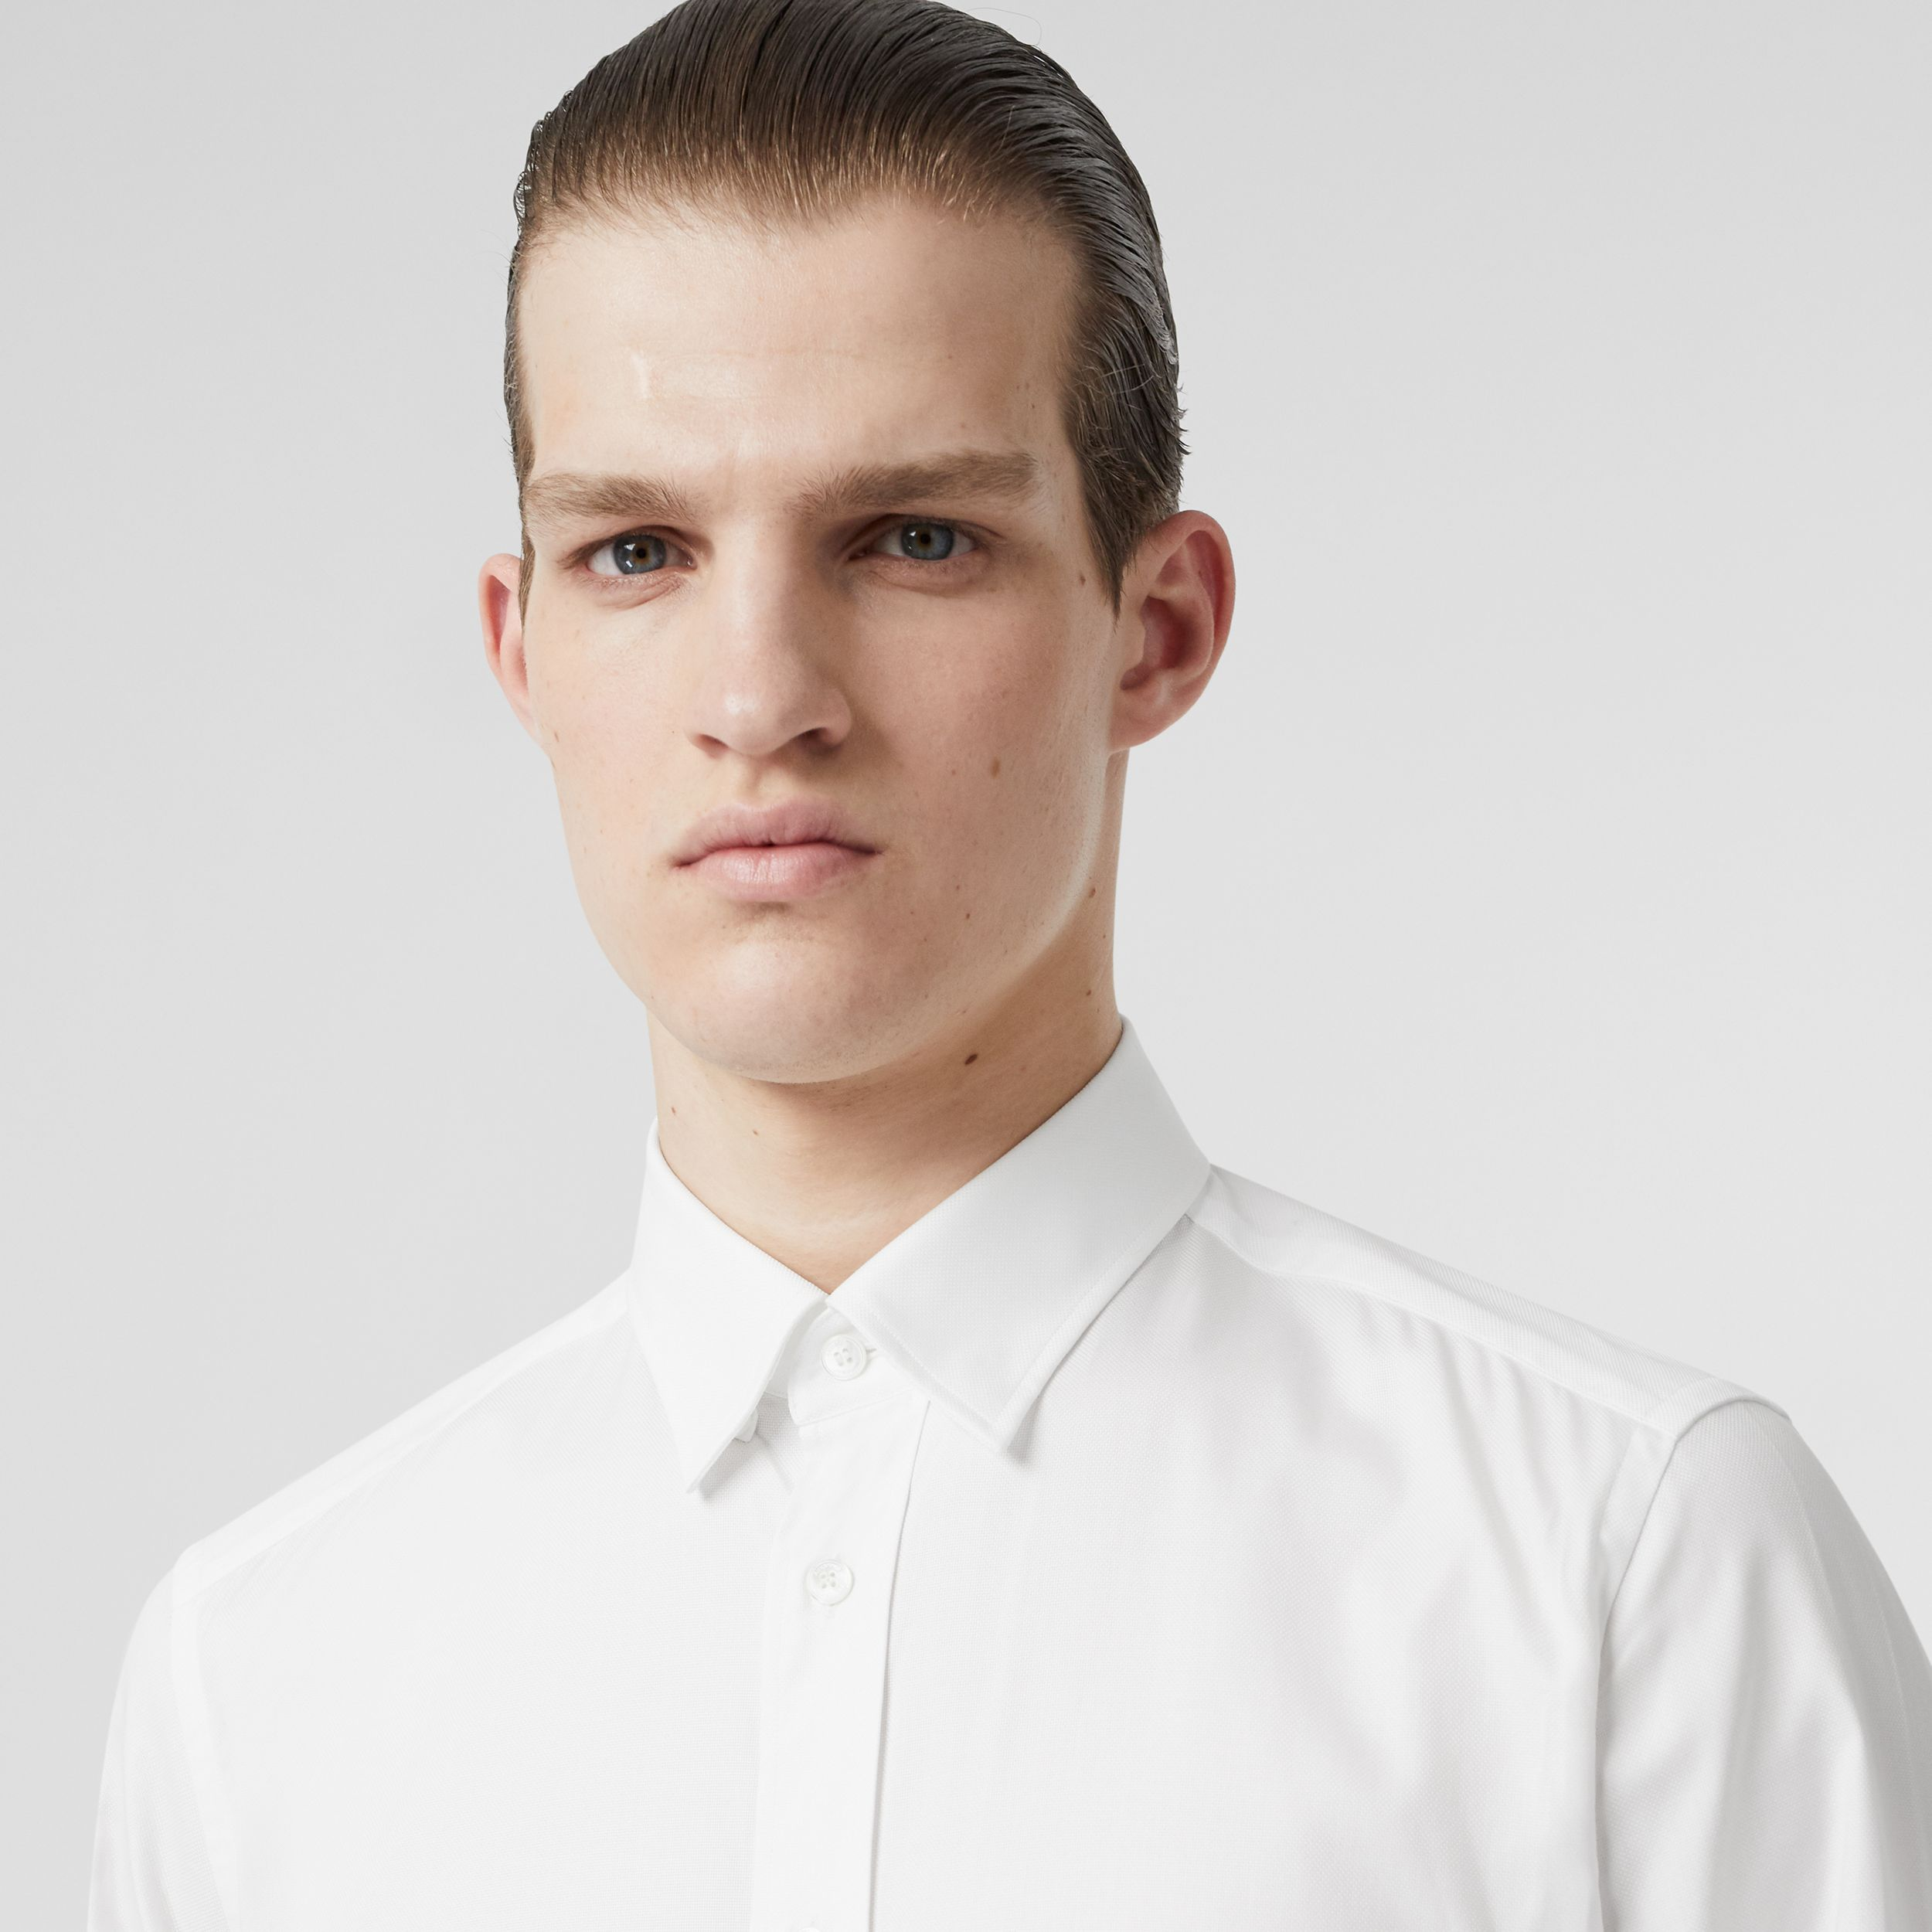 Classic Fit Monogram Motif Cotton Oxford Shirt in White - Men | Burberry - 2